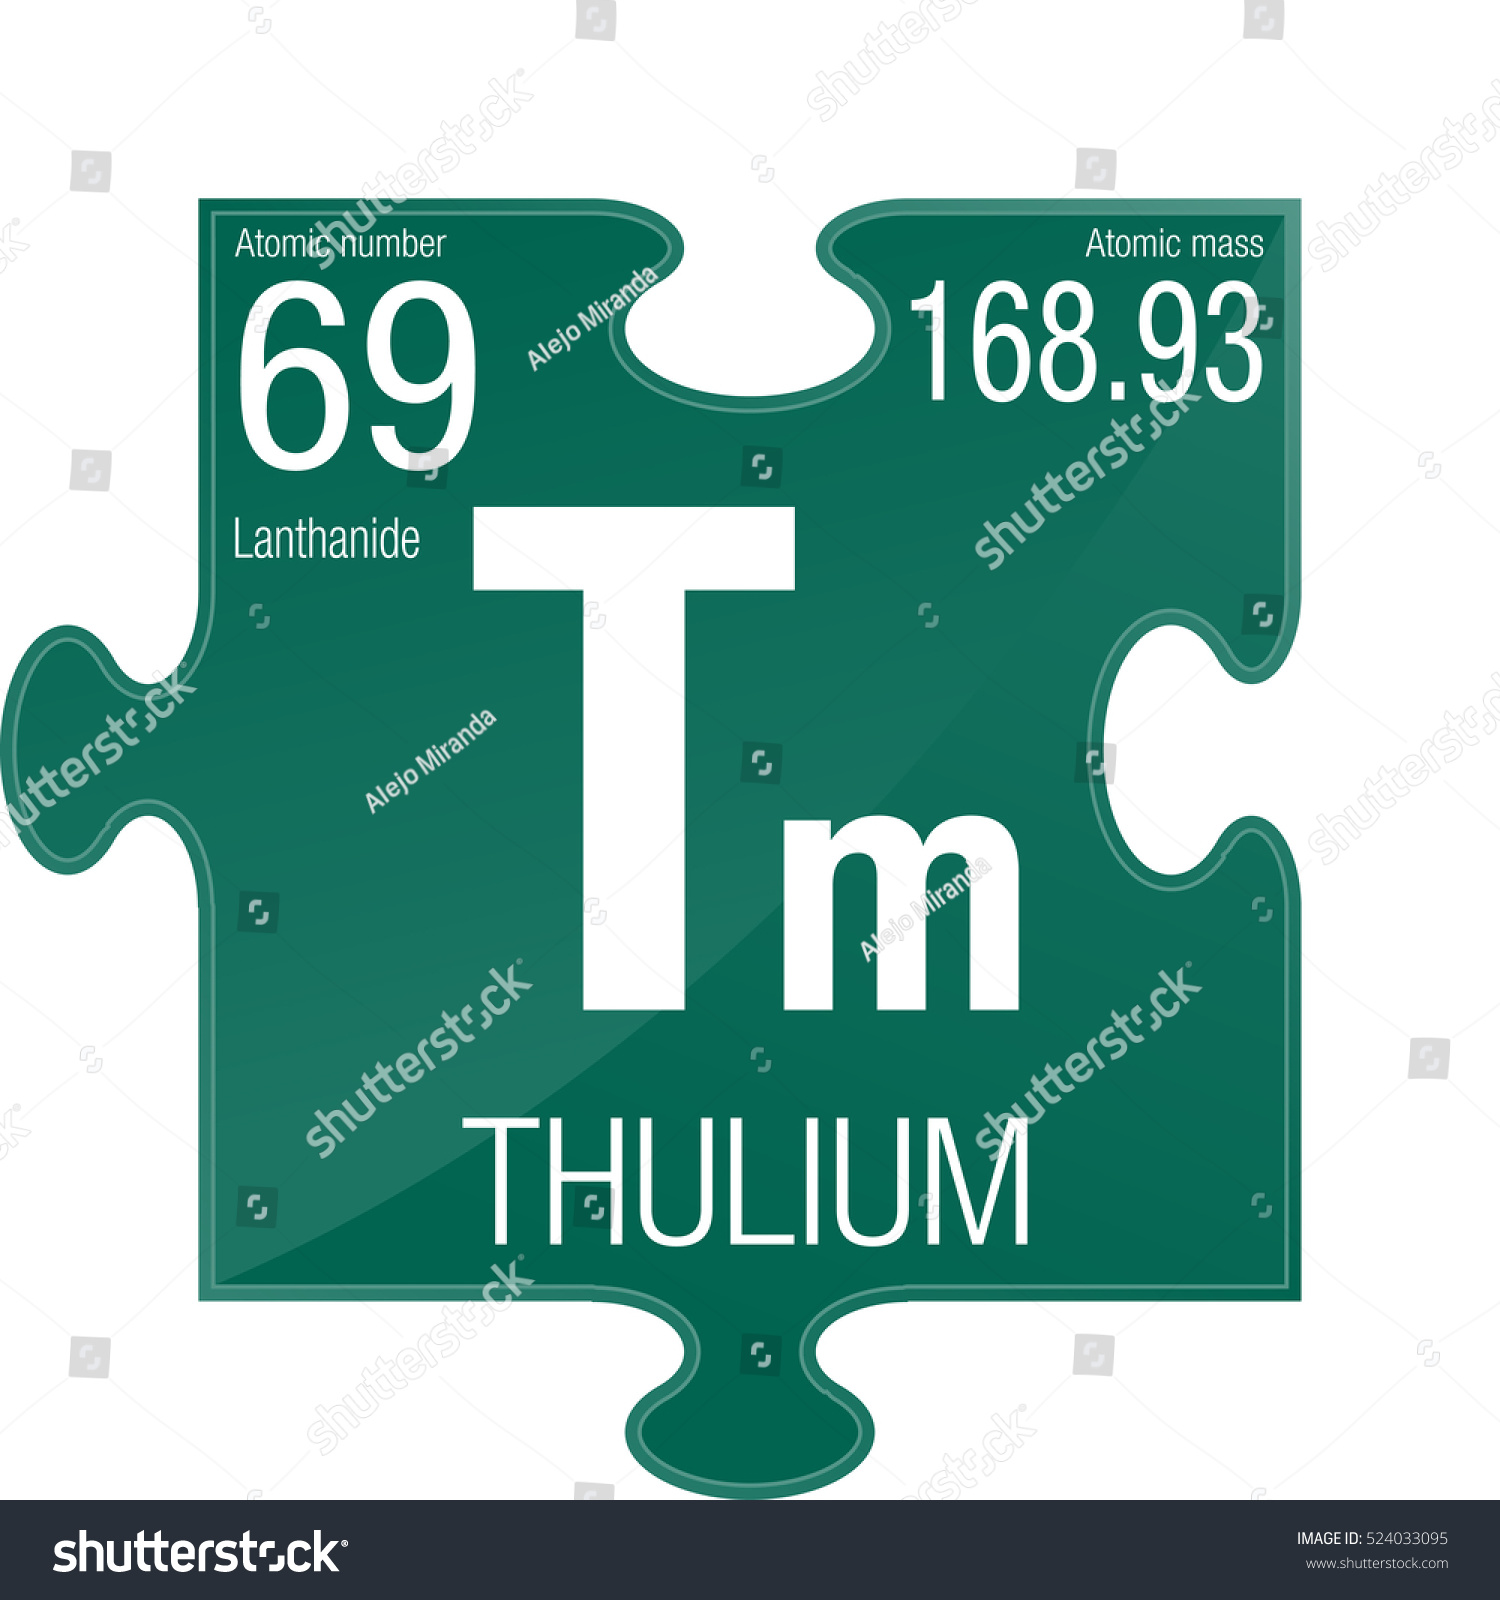 Thulium symbol element number 69 periodic stock vector 524033095 thulium symbol element number 69 of the periodic table of the elements chemistry gamestrikefo Gallery